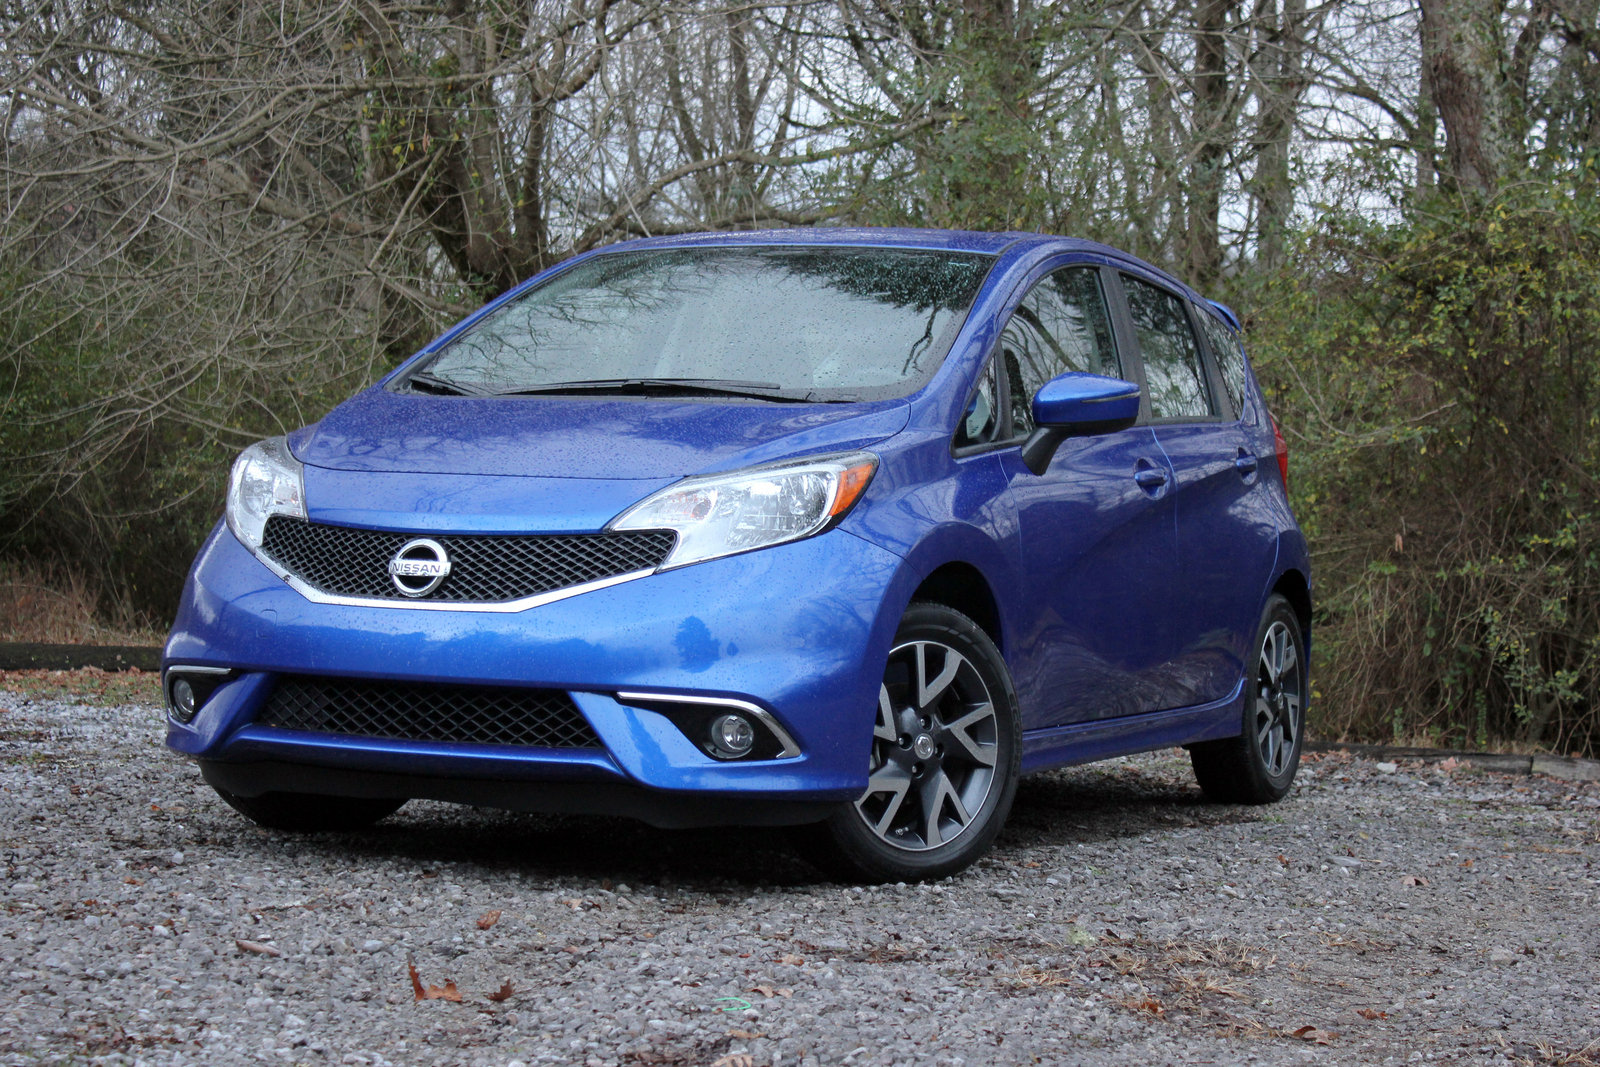 2015 nissan versa note sr driven picture 585800 car review top speed. Black Bedroom Furniture Sets. Home Design Ideas